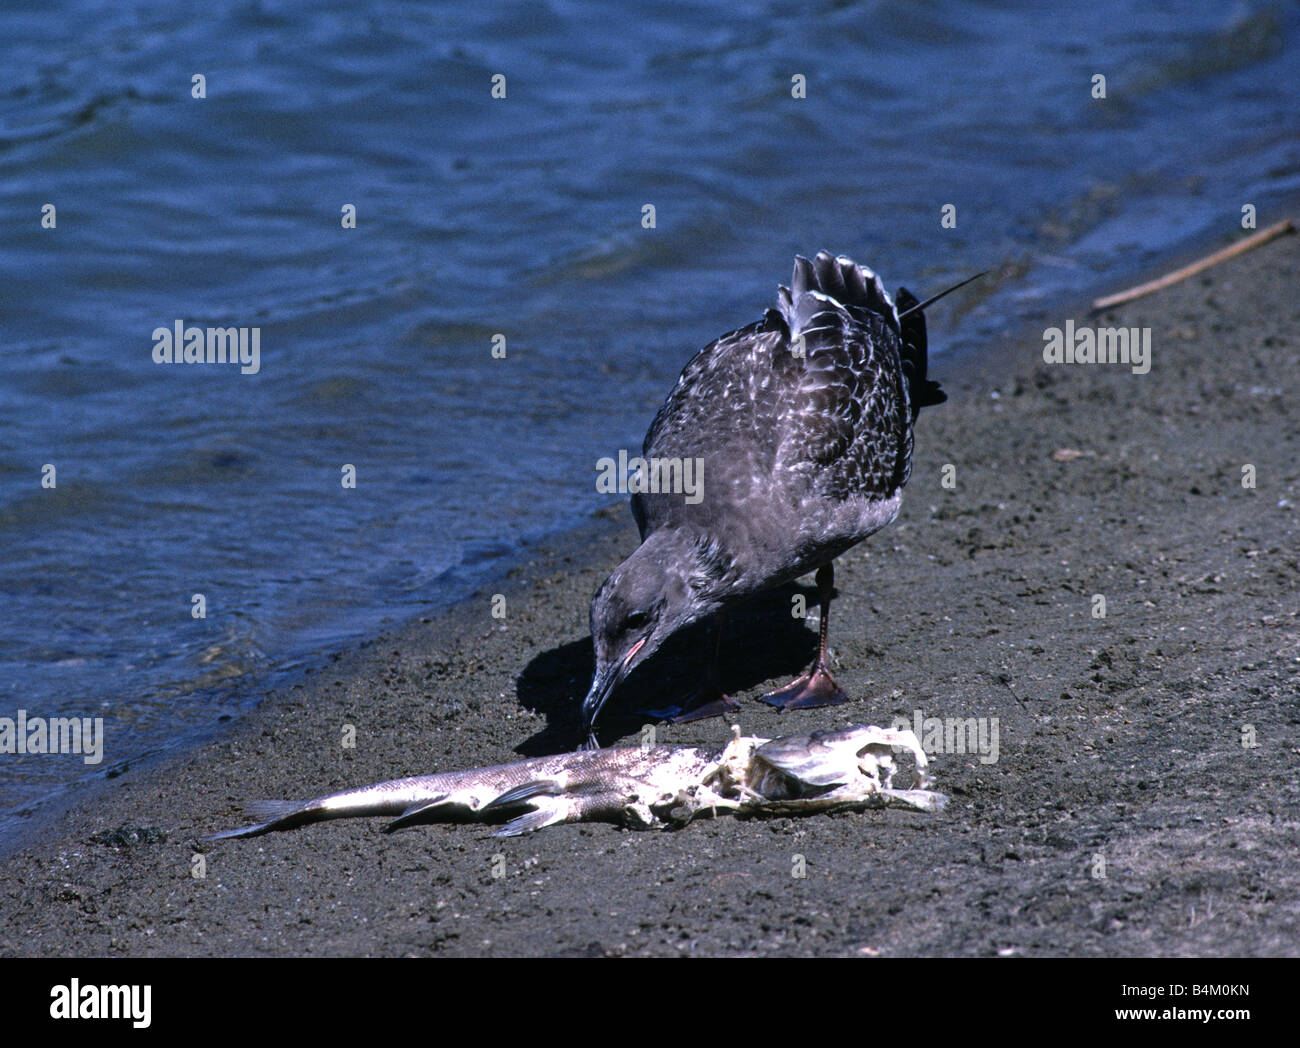 Gull feeds on dead fish at a lake in San Francisco California USA - Stock Image